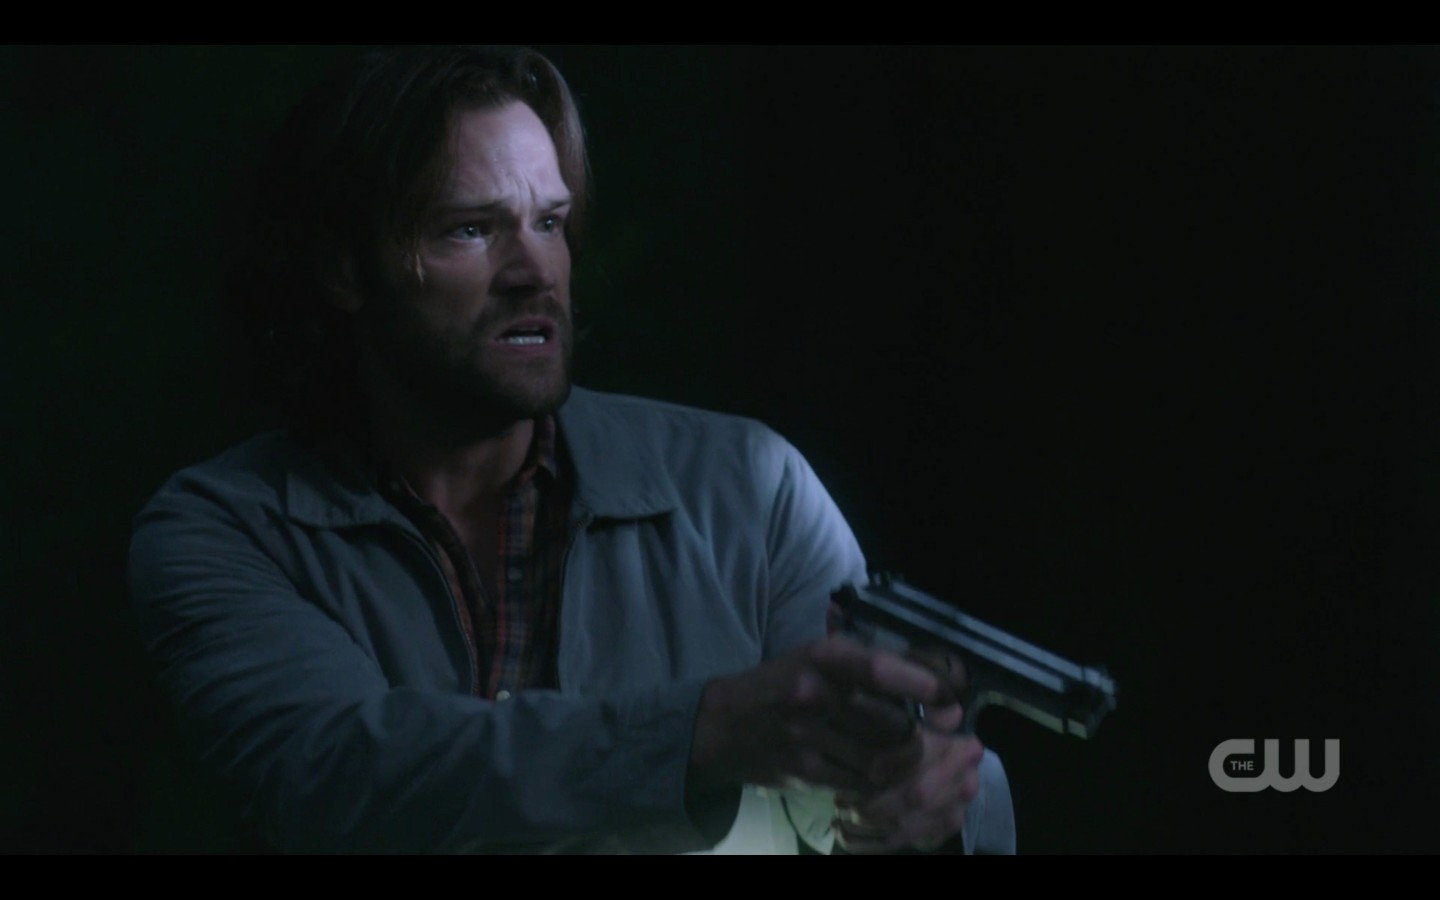 sam winchester freaked out with gun spn